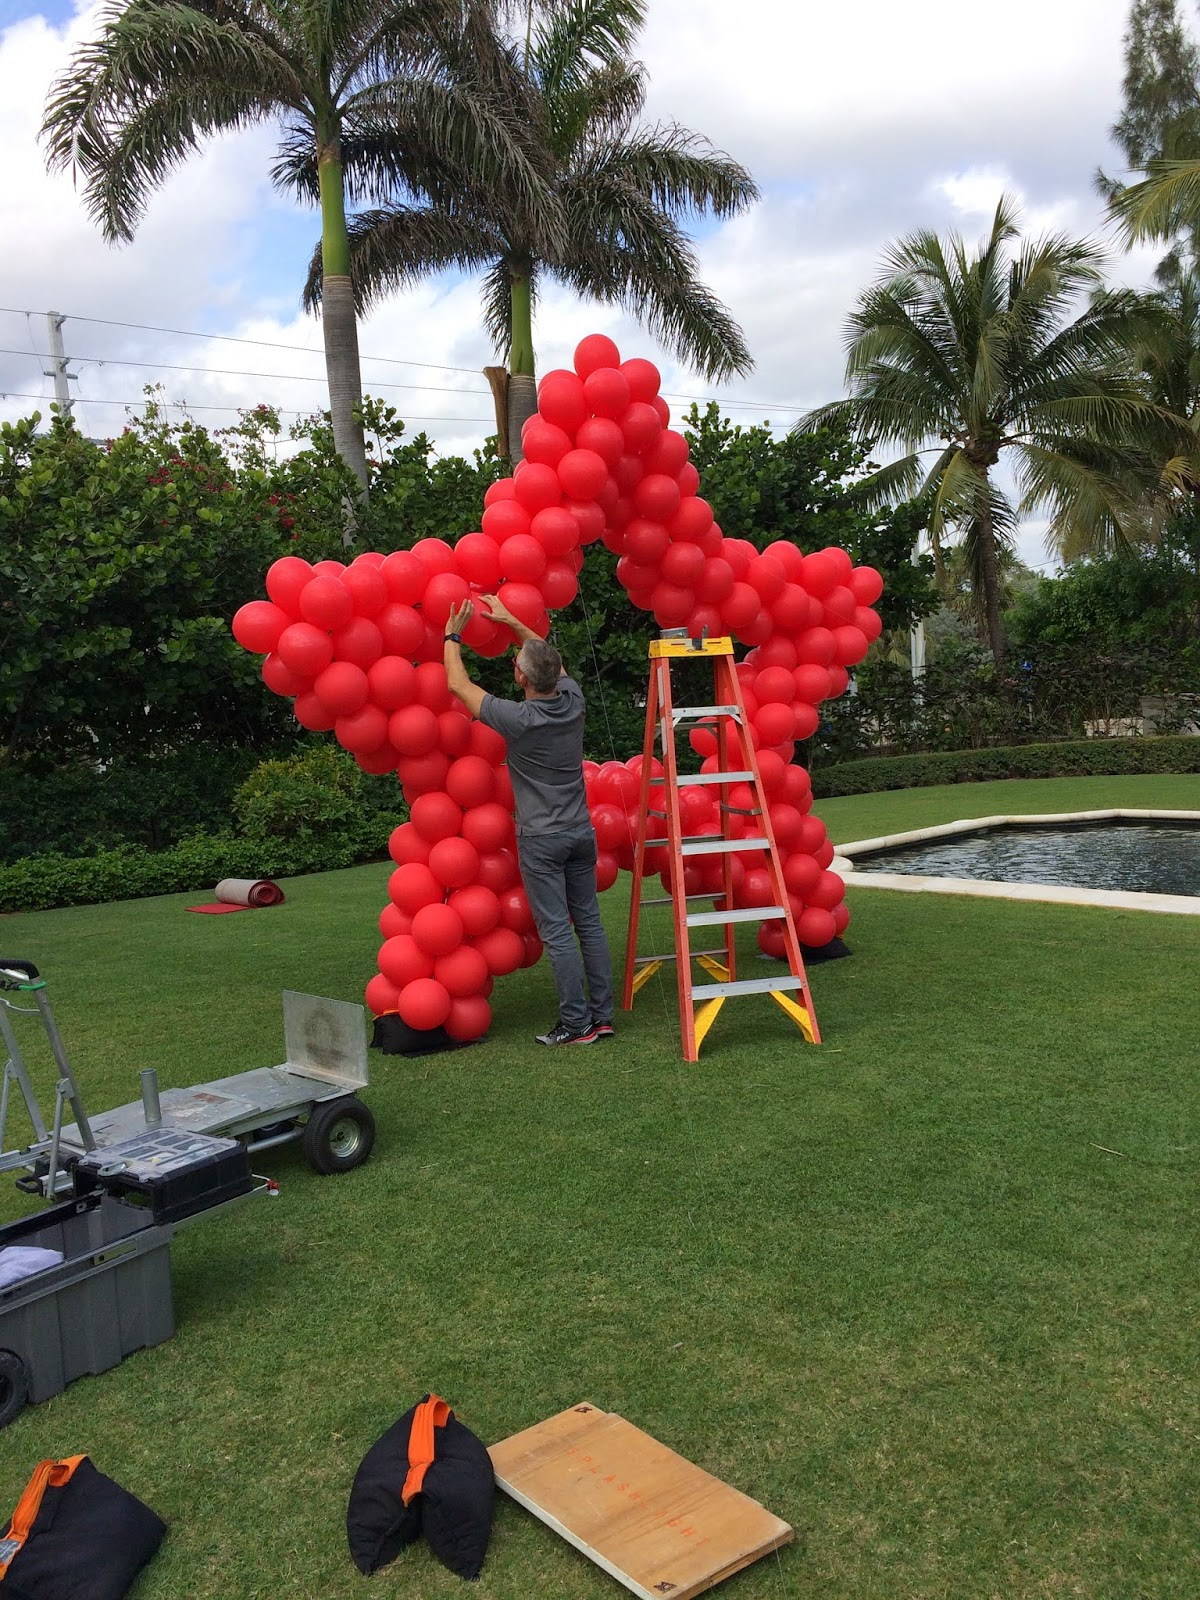 Red star shape balloon sculpture